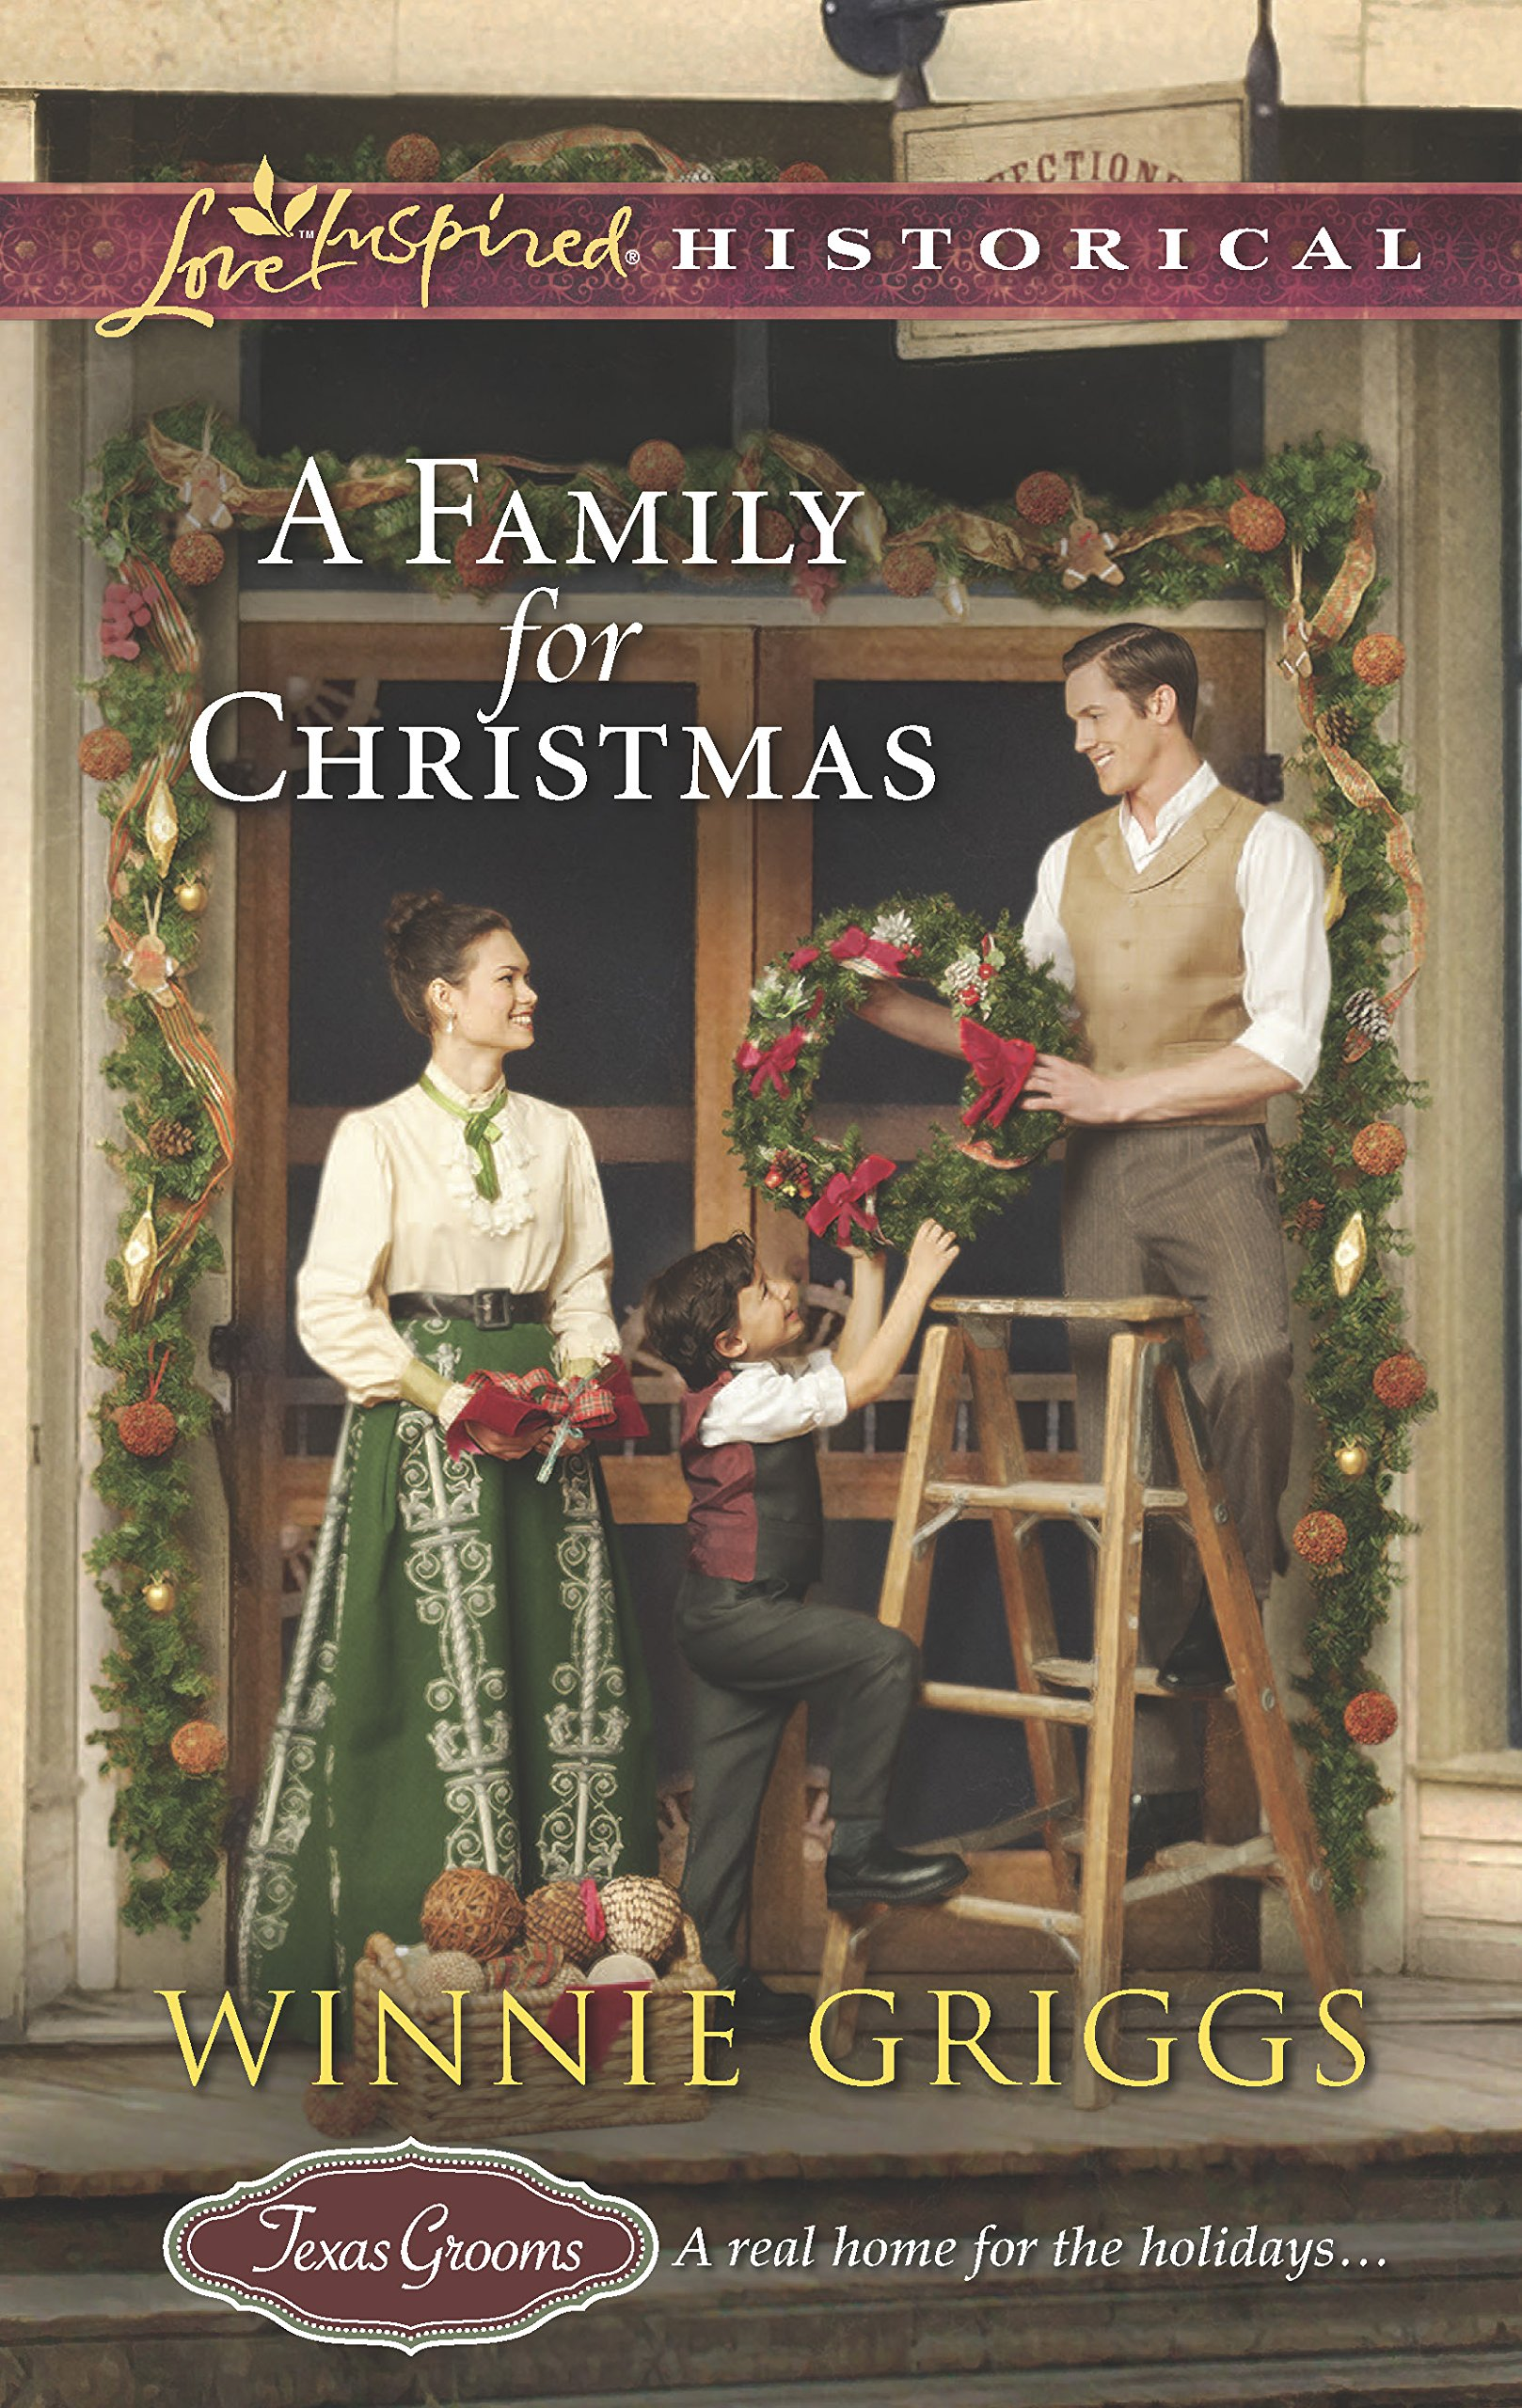 A Family for Christmas (Texas Grooms (Love Inspired Historical)) PDF